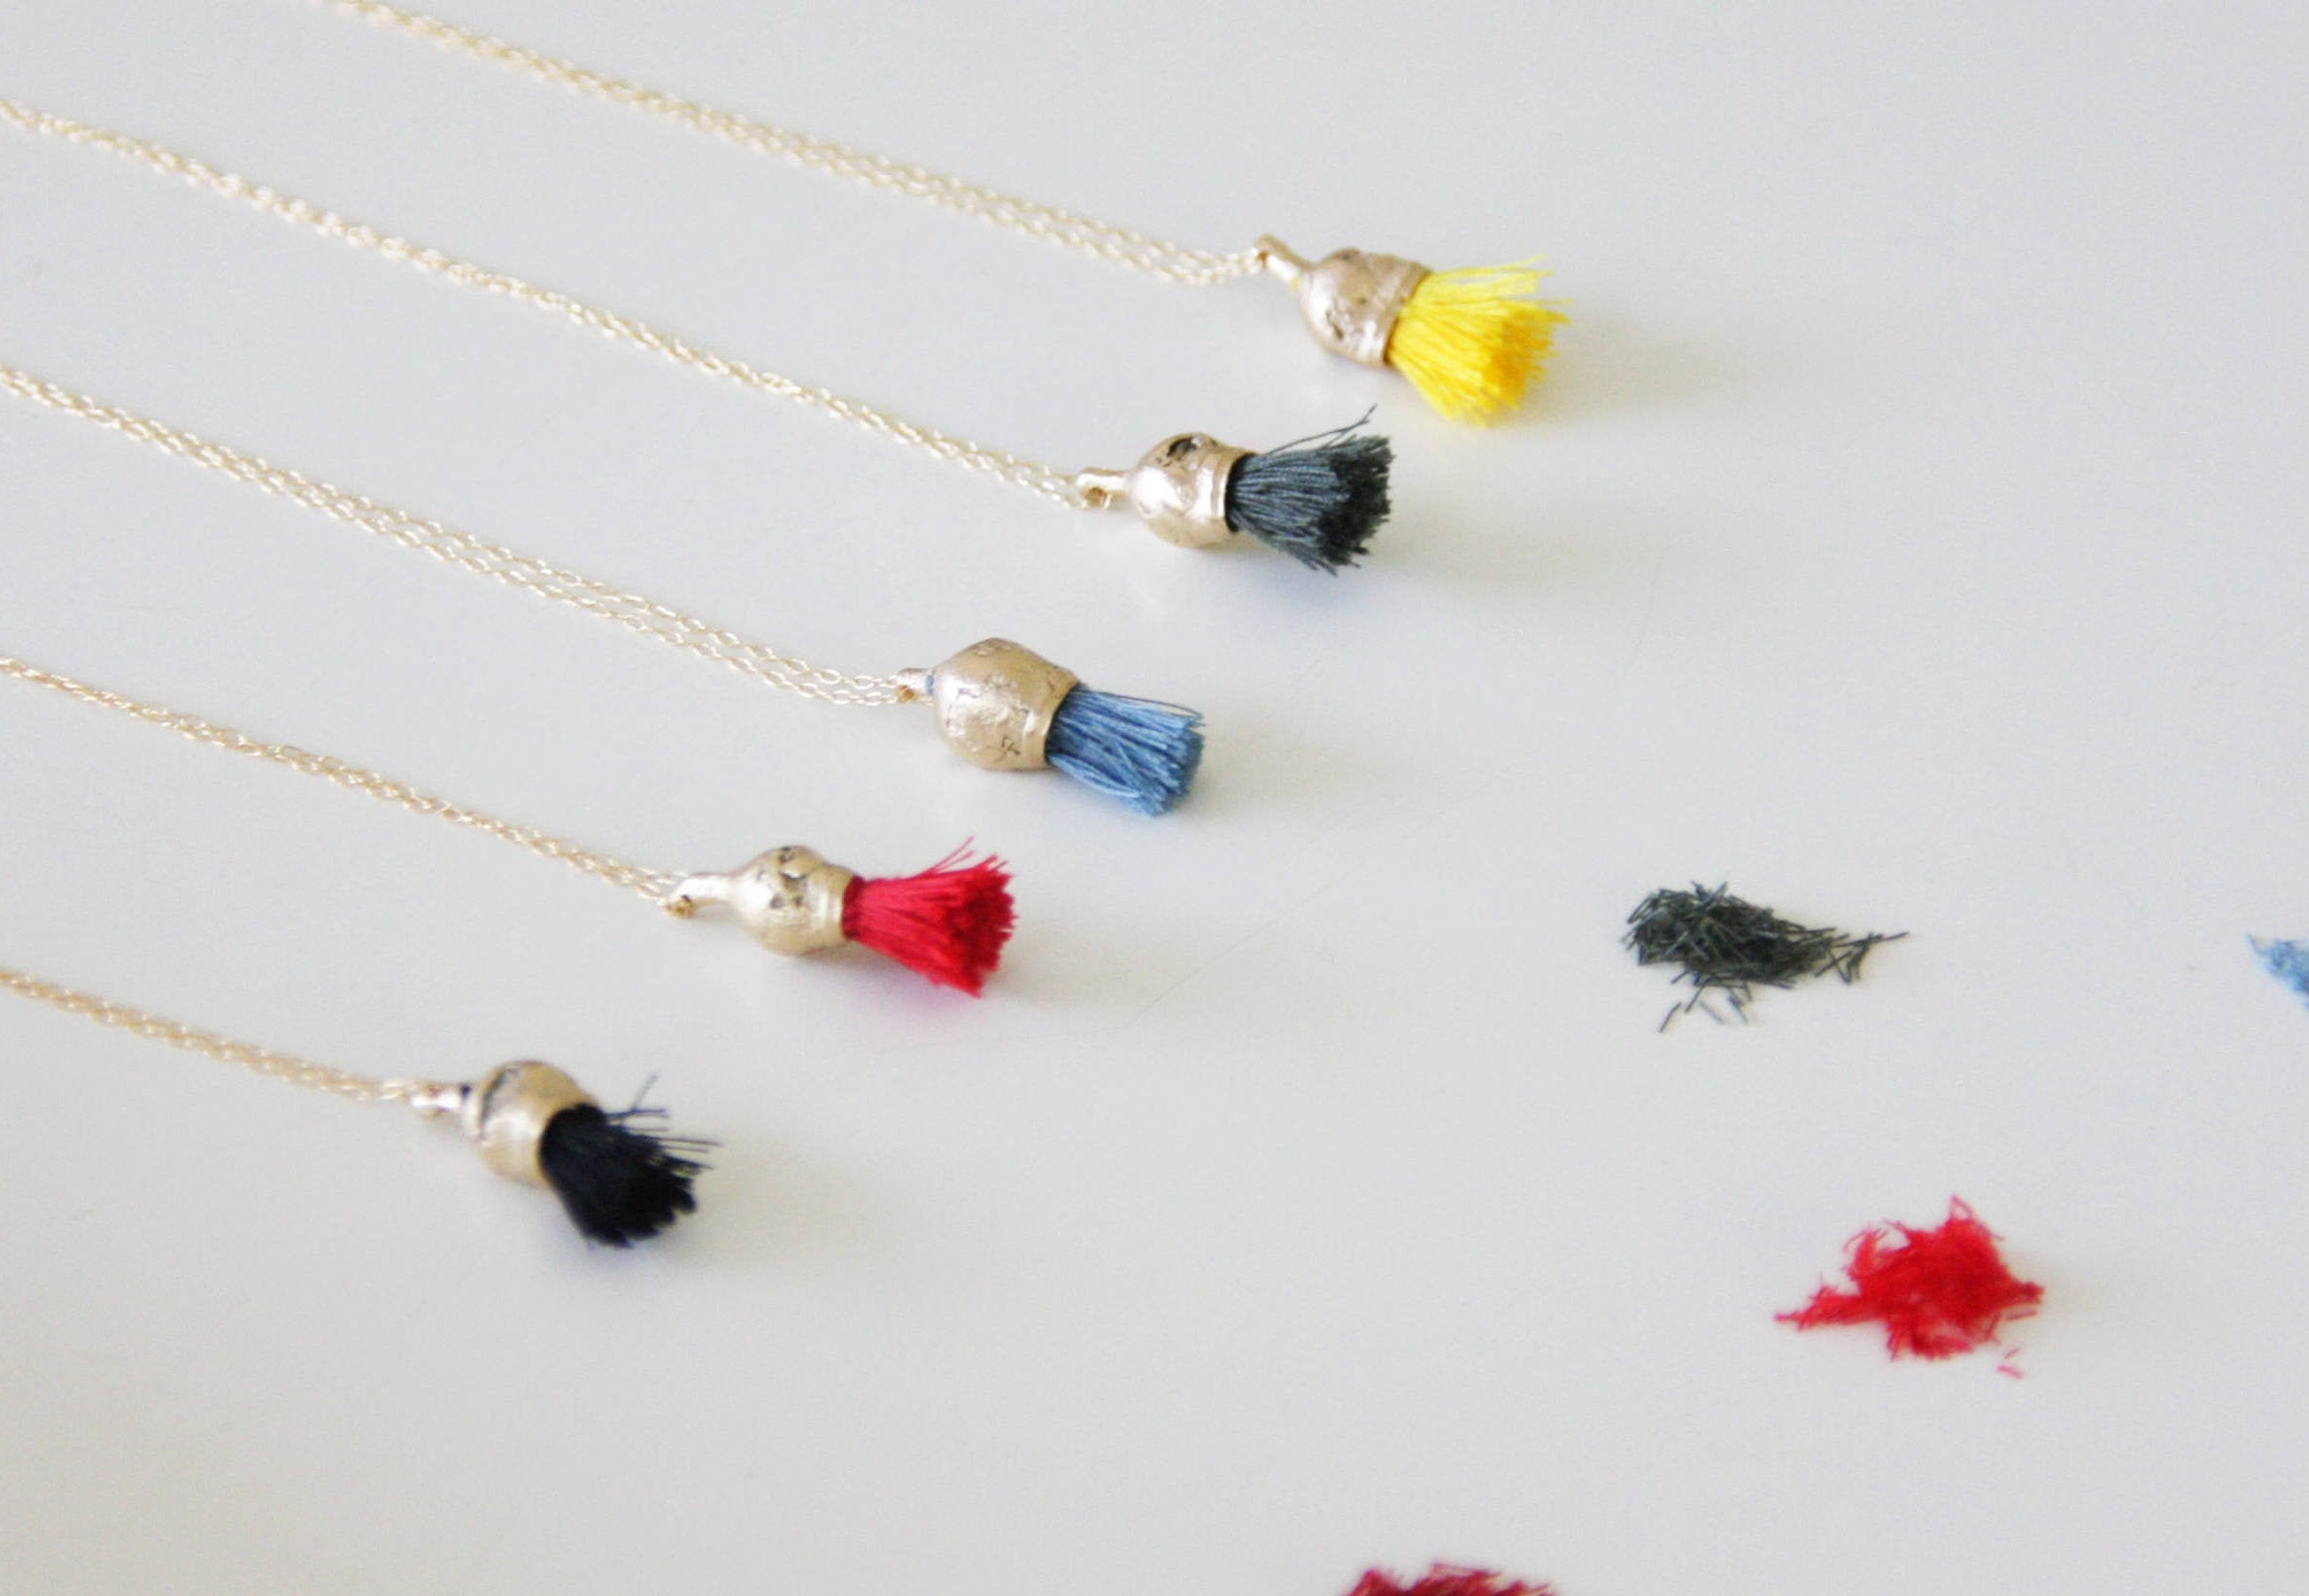 Christmas Red Tassel Necklace / Gold And Cotton Pendant / Organic Necklace / Gold Charm Pendant - hs